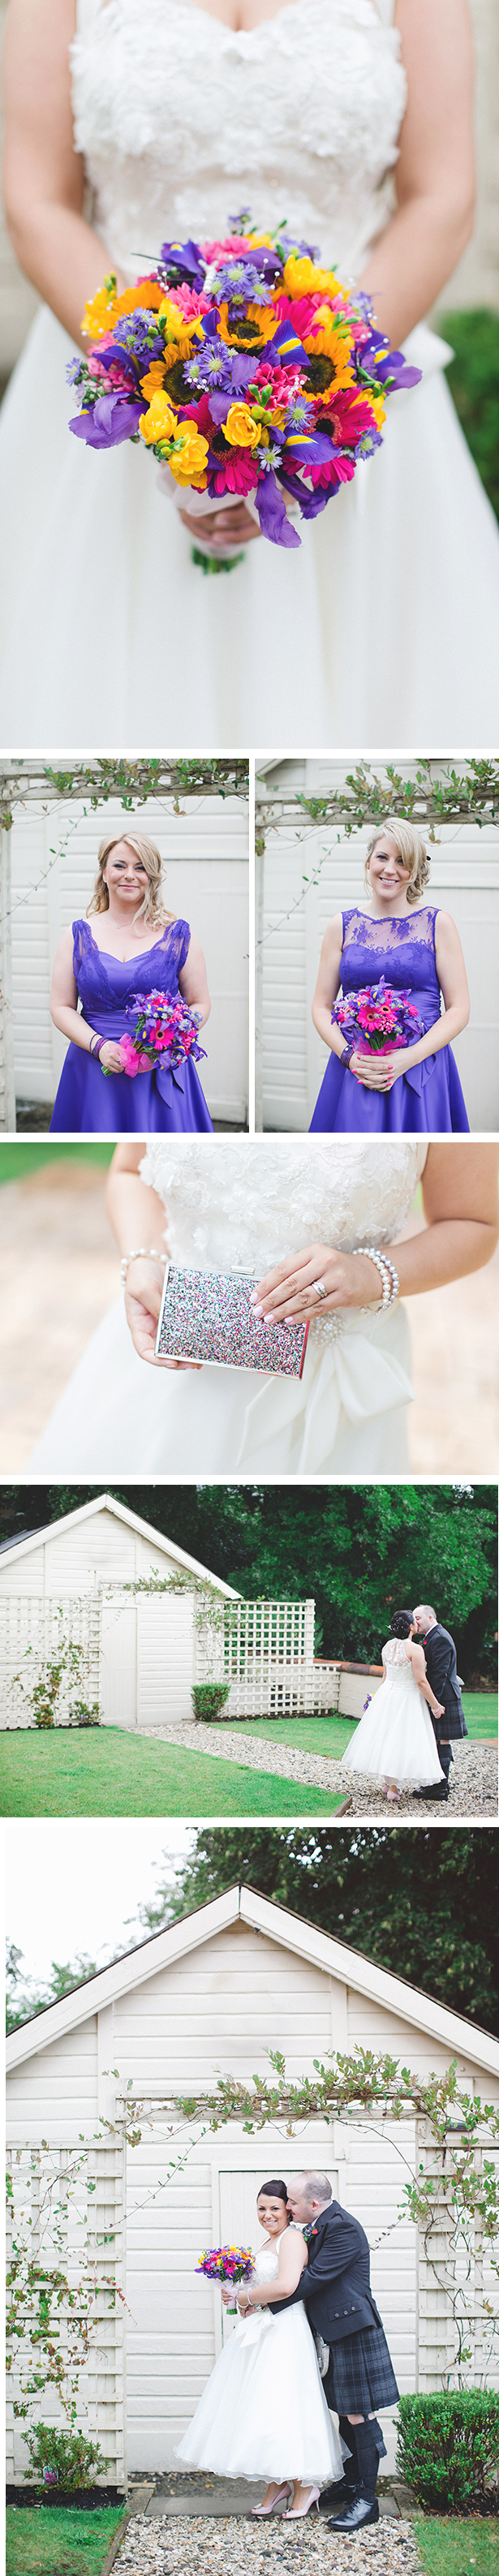 Multi-coloured wedding bouquet | Katie and Ian's real wedding | Confetti.co.uk